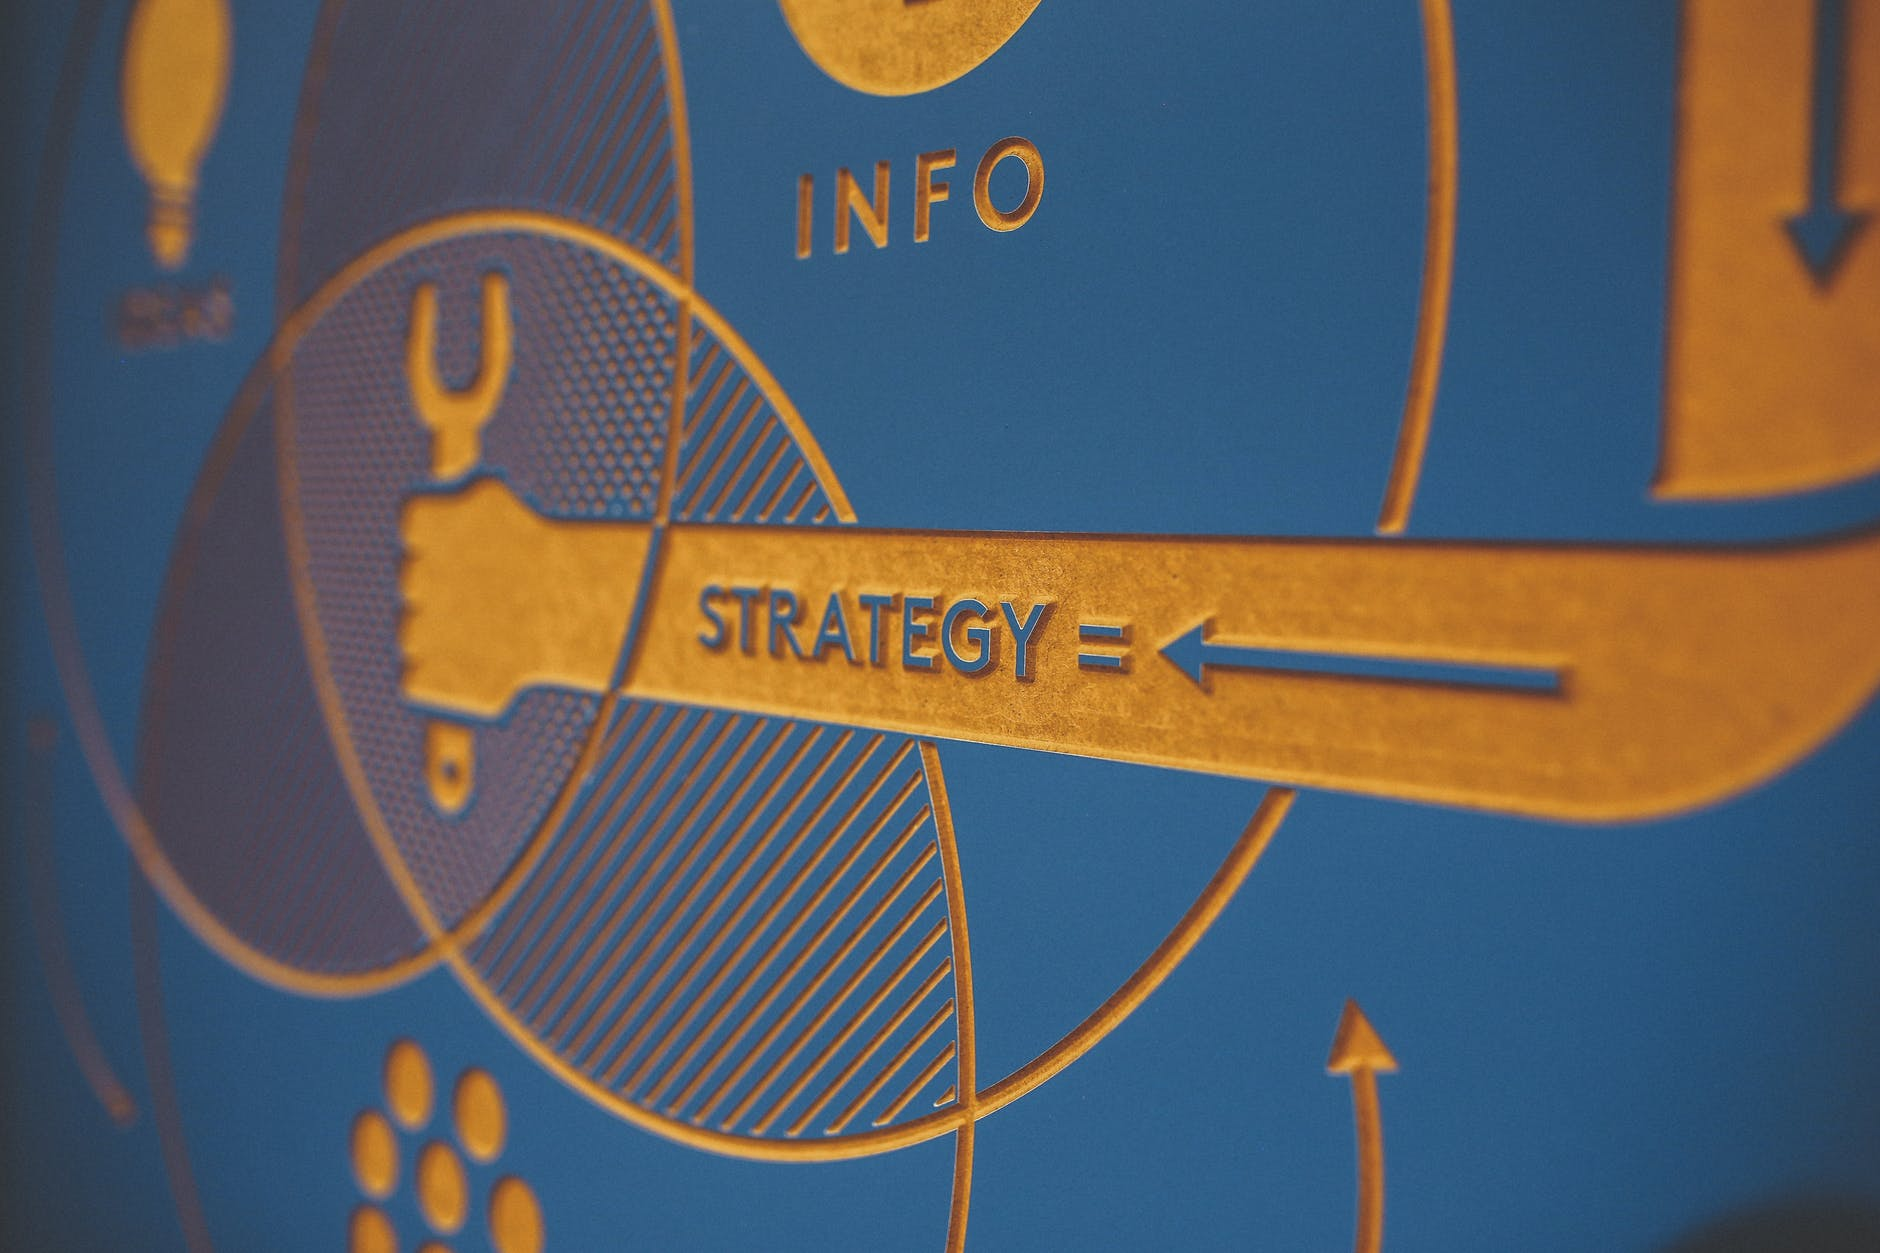 You need a good marketing strategy plan, not luck